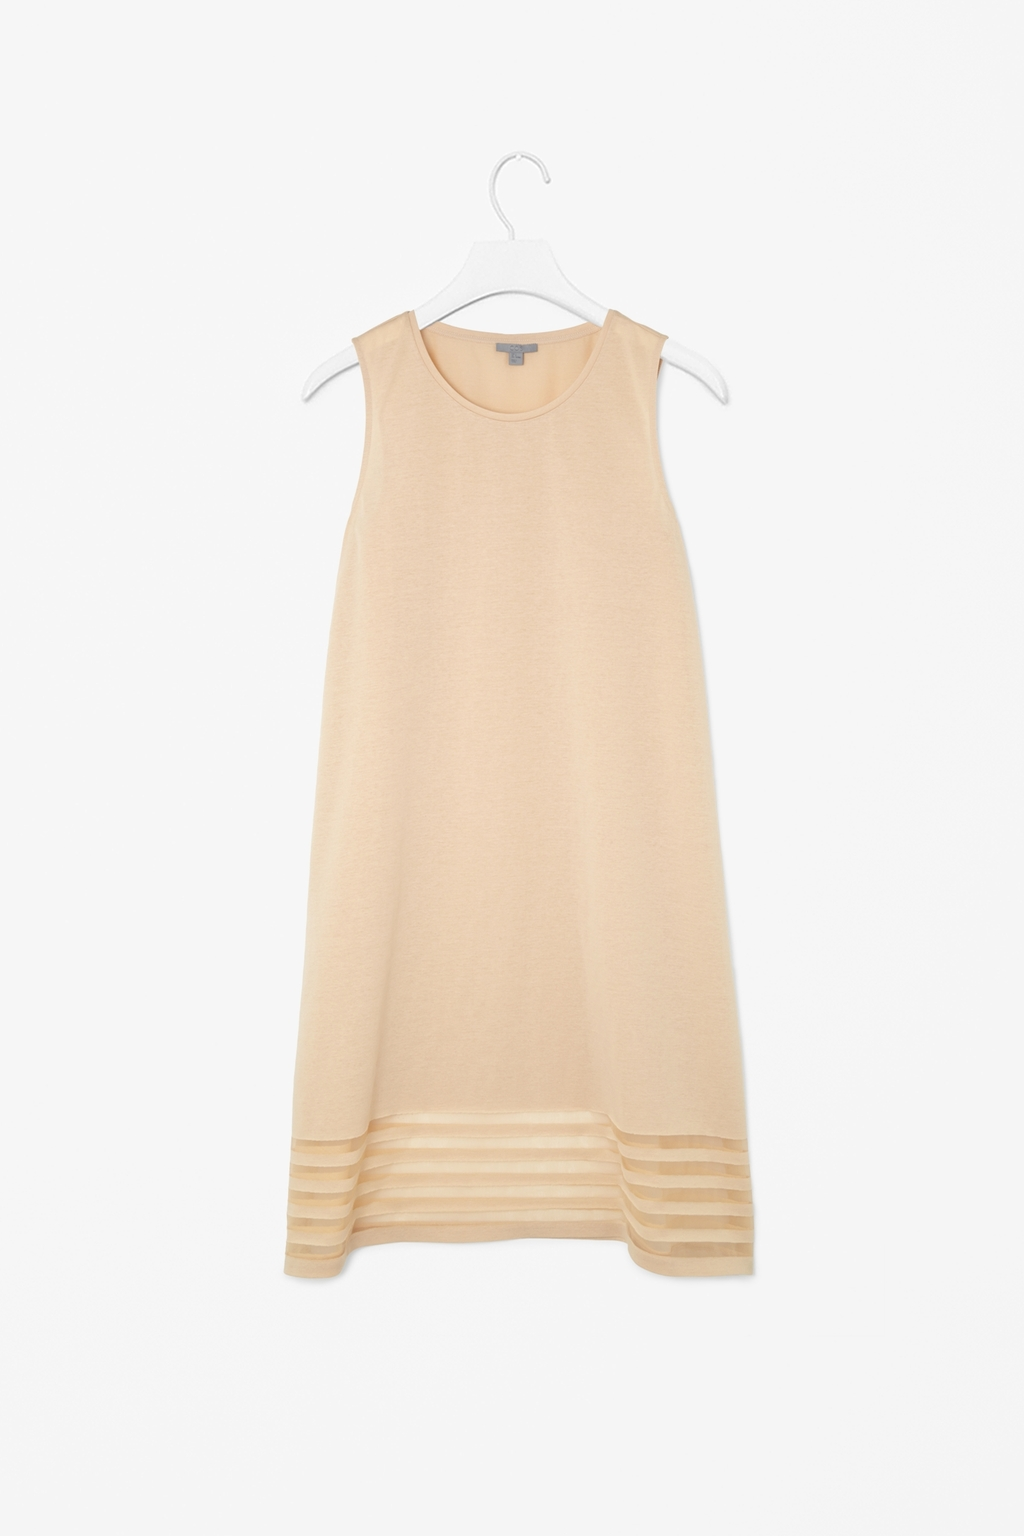 Dress With Sheer Stripes - style: trapeze; length: mid thigh; neckline: round neck; pattern: plain; sleeve style: sleeveless; predominant colour: stone; fit: soft a-line; fibres: cotton - mix; occasions: occasion, creative work; sleeve length: sleeveless; pattern type: fabric; texture group: other - light to midweight; season: s/s 2014